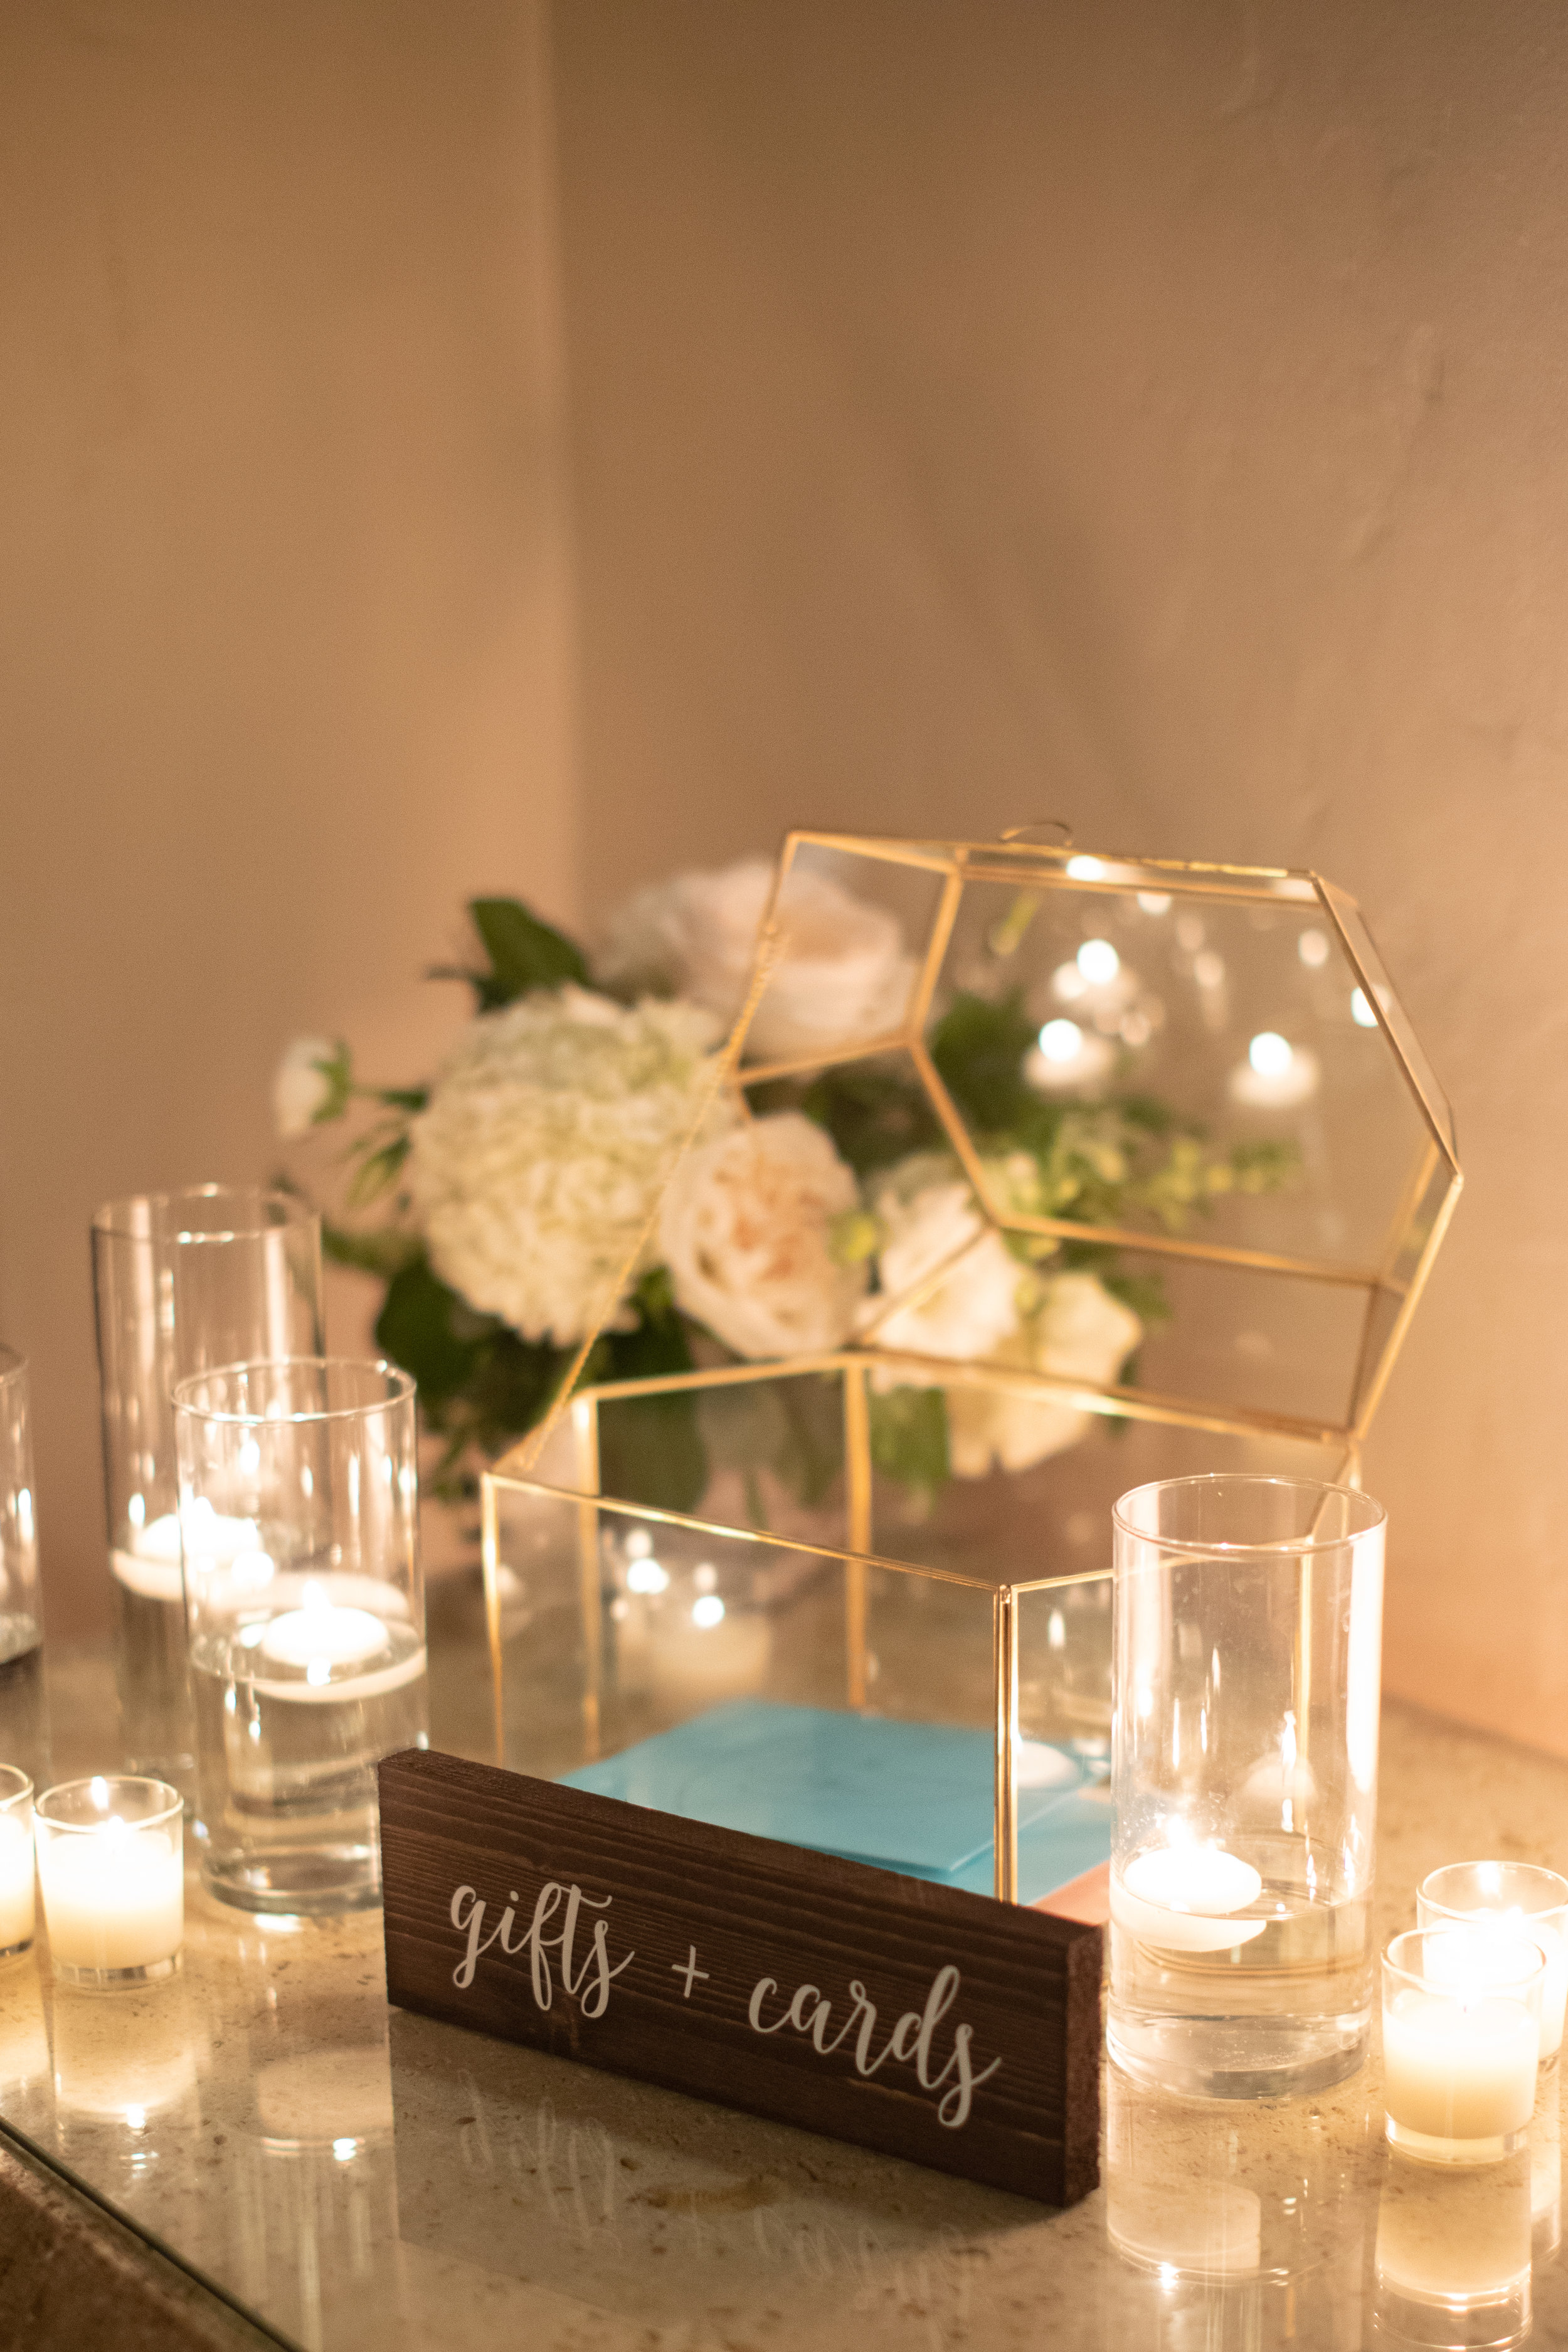 www.santabarbarawedding.com | KB Events | Michael and Anna Costa | Four Seasons The Biltmore | Gifts and Card Table